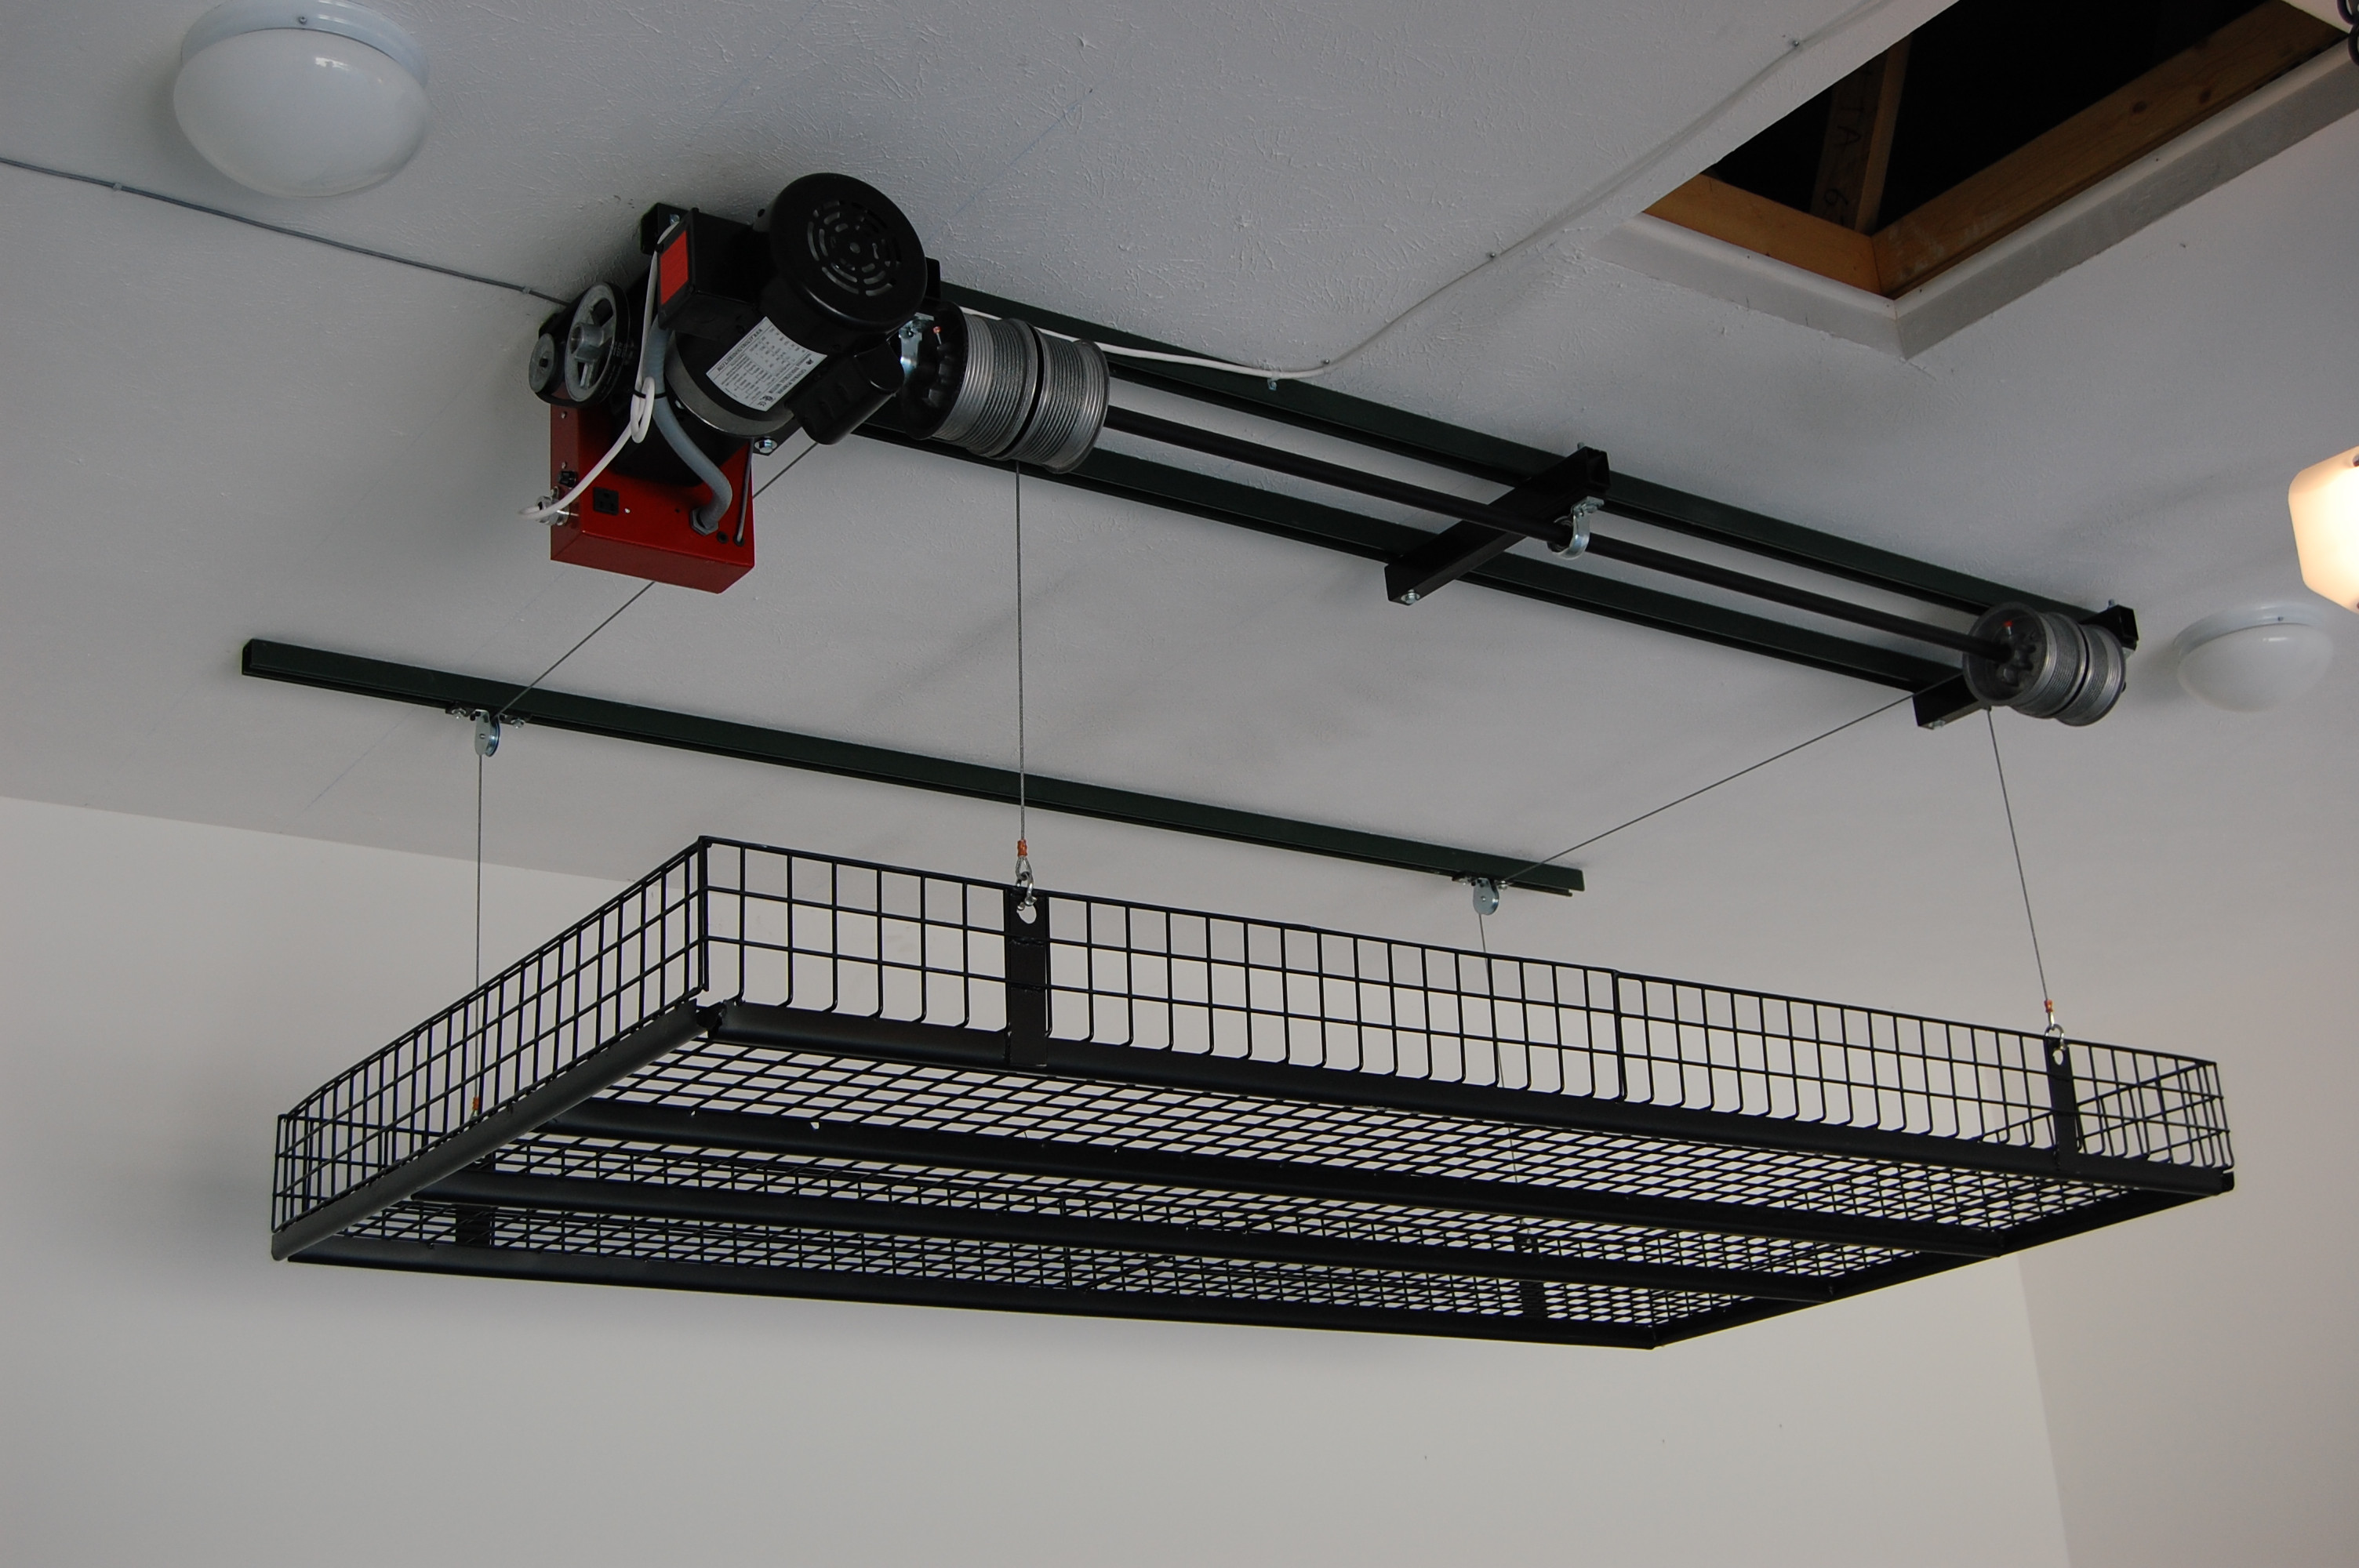 Best ideas about Garage Ceiling Storage Lift . Save or Pin Garage storage products that make every inch count Now.